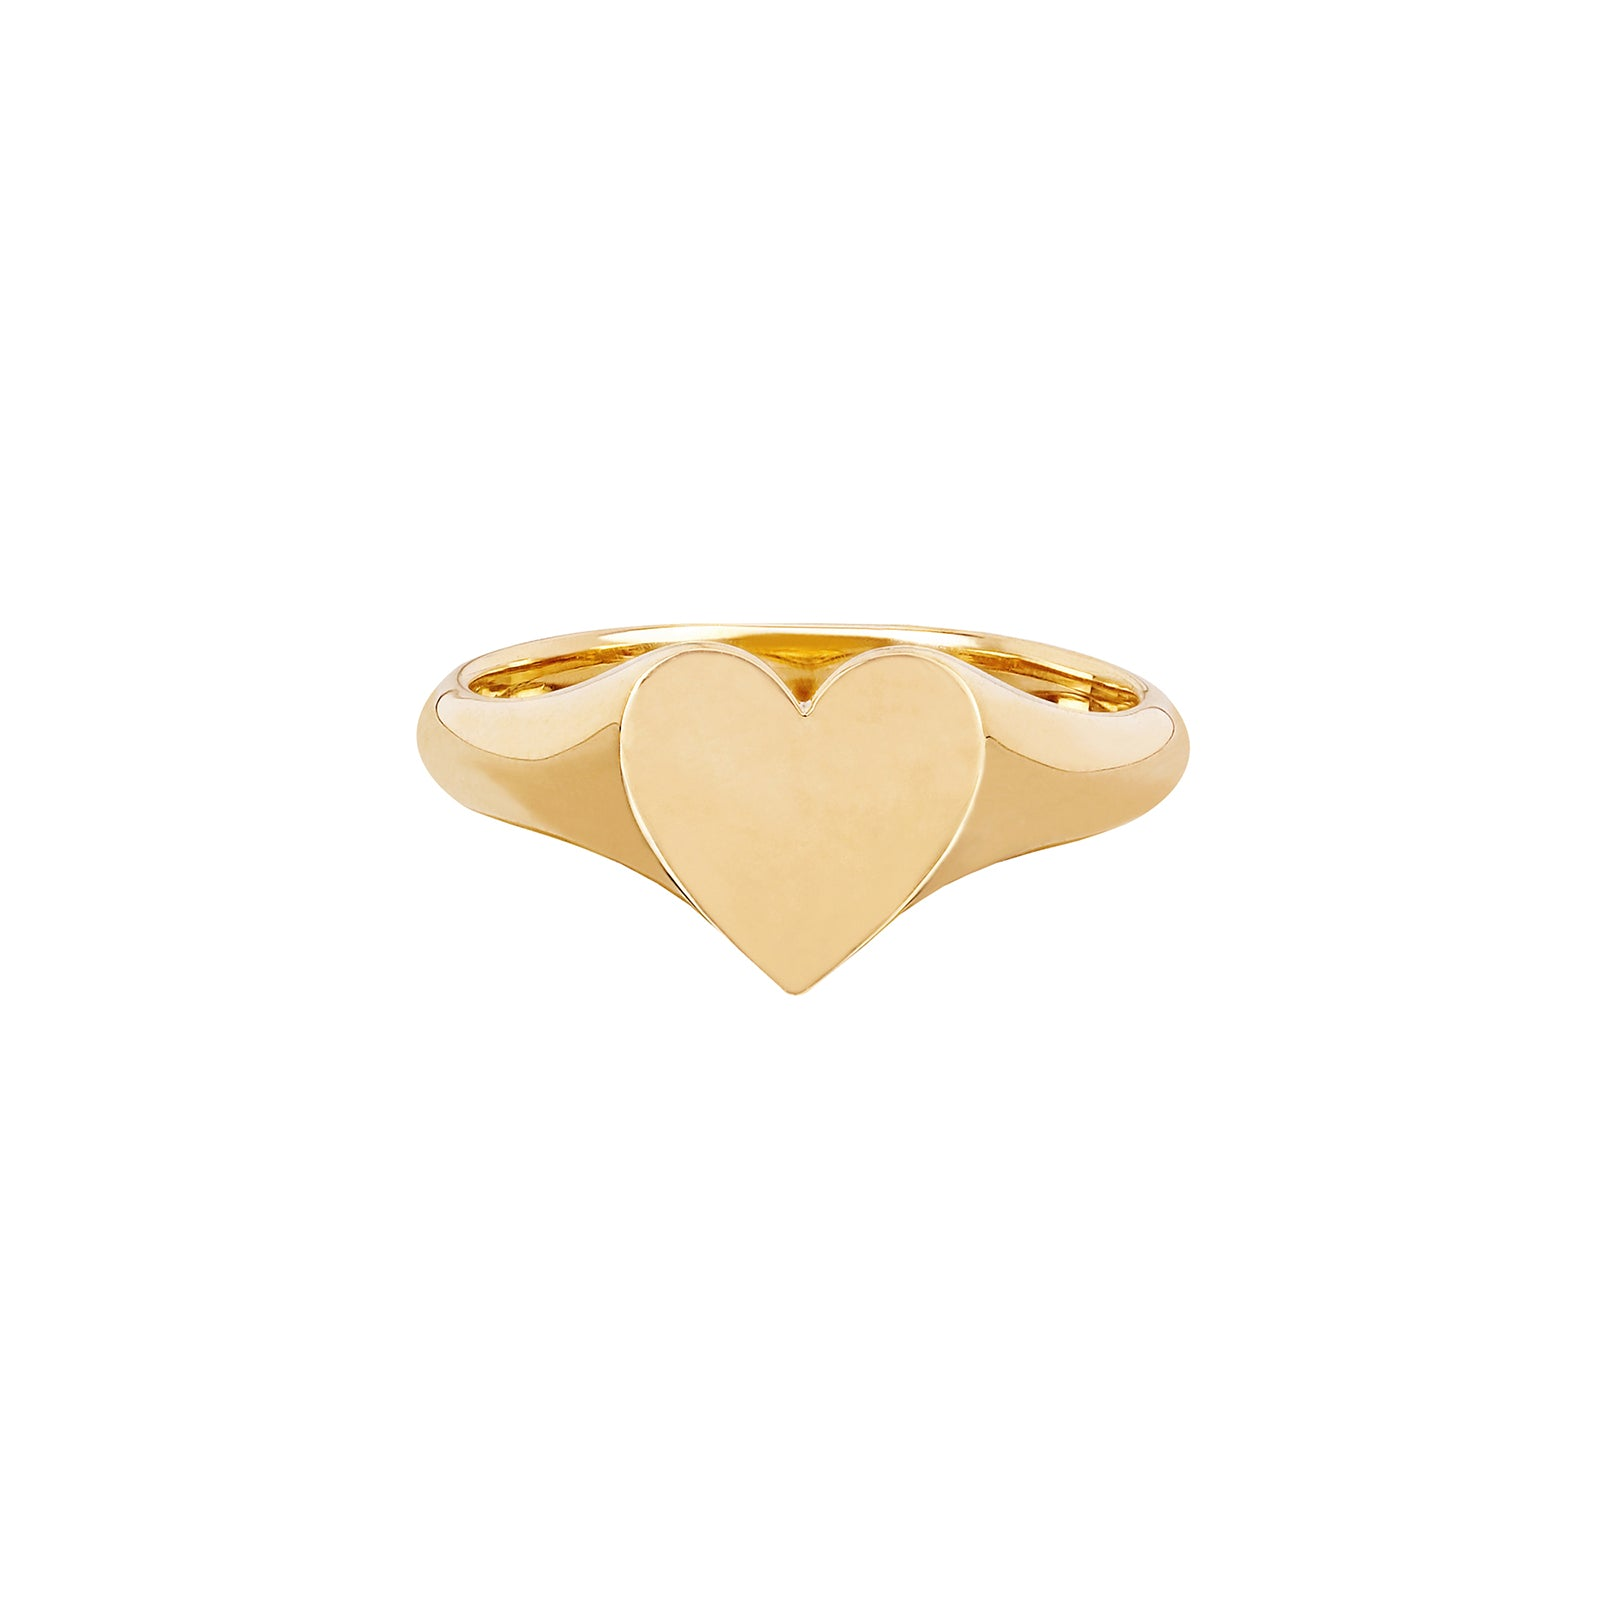 EF Collection Heart Signet Pinky Ring - Yellow Gold - Rings - Broken English Jewelry